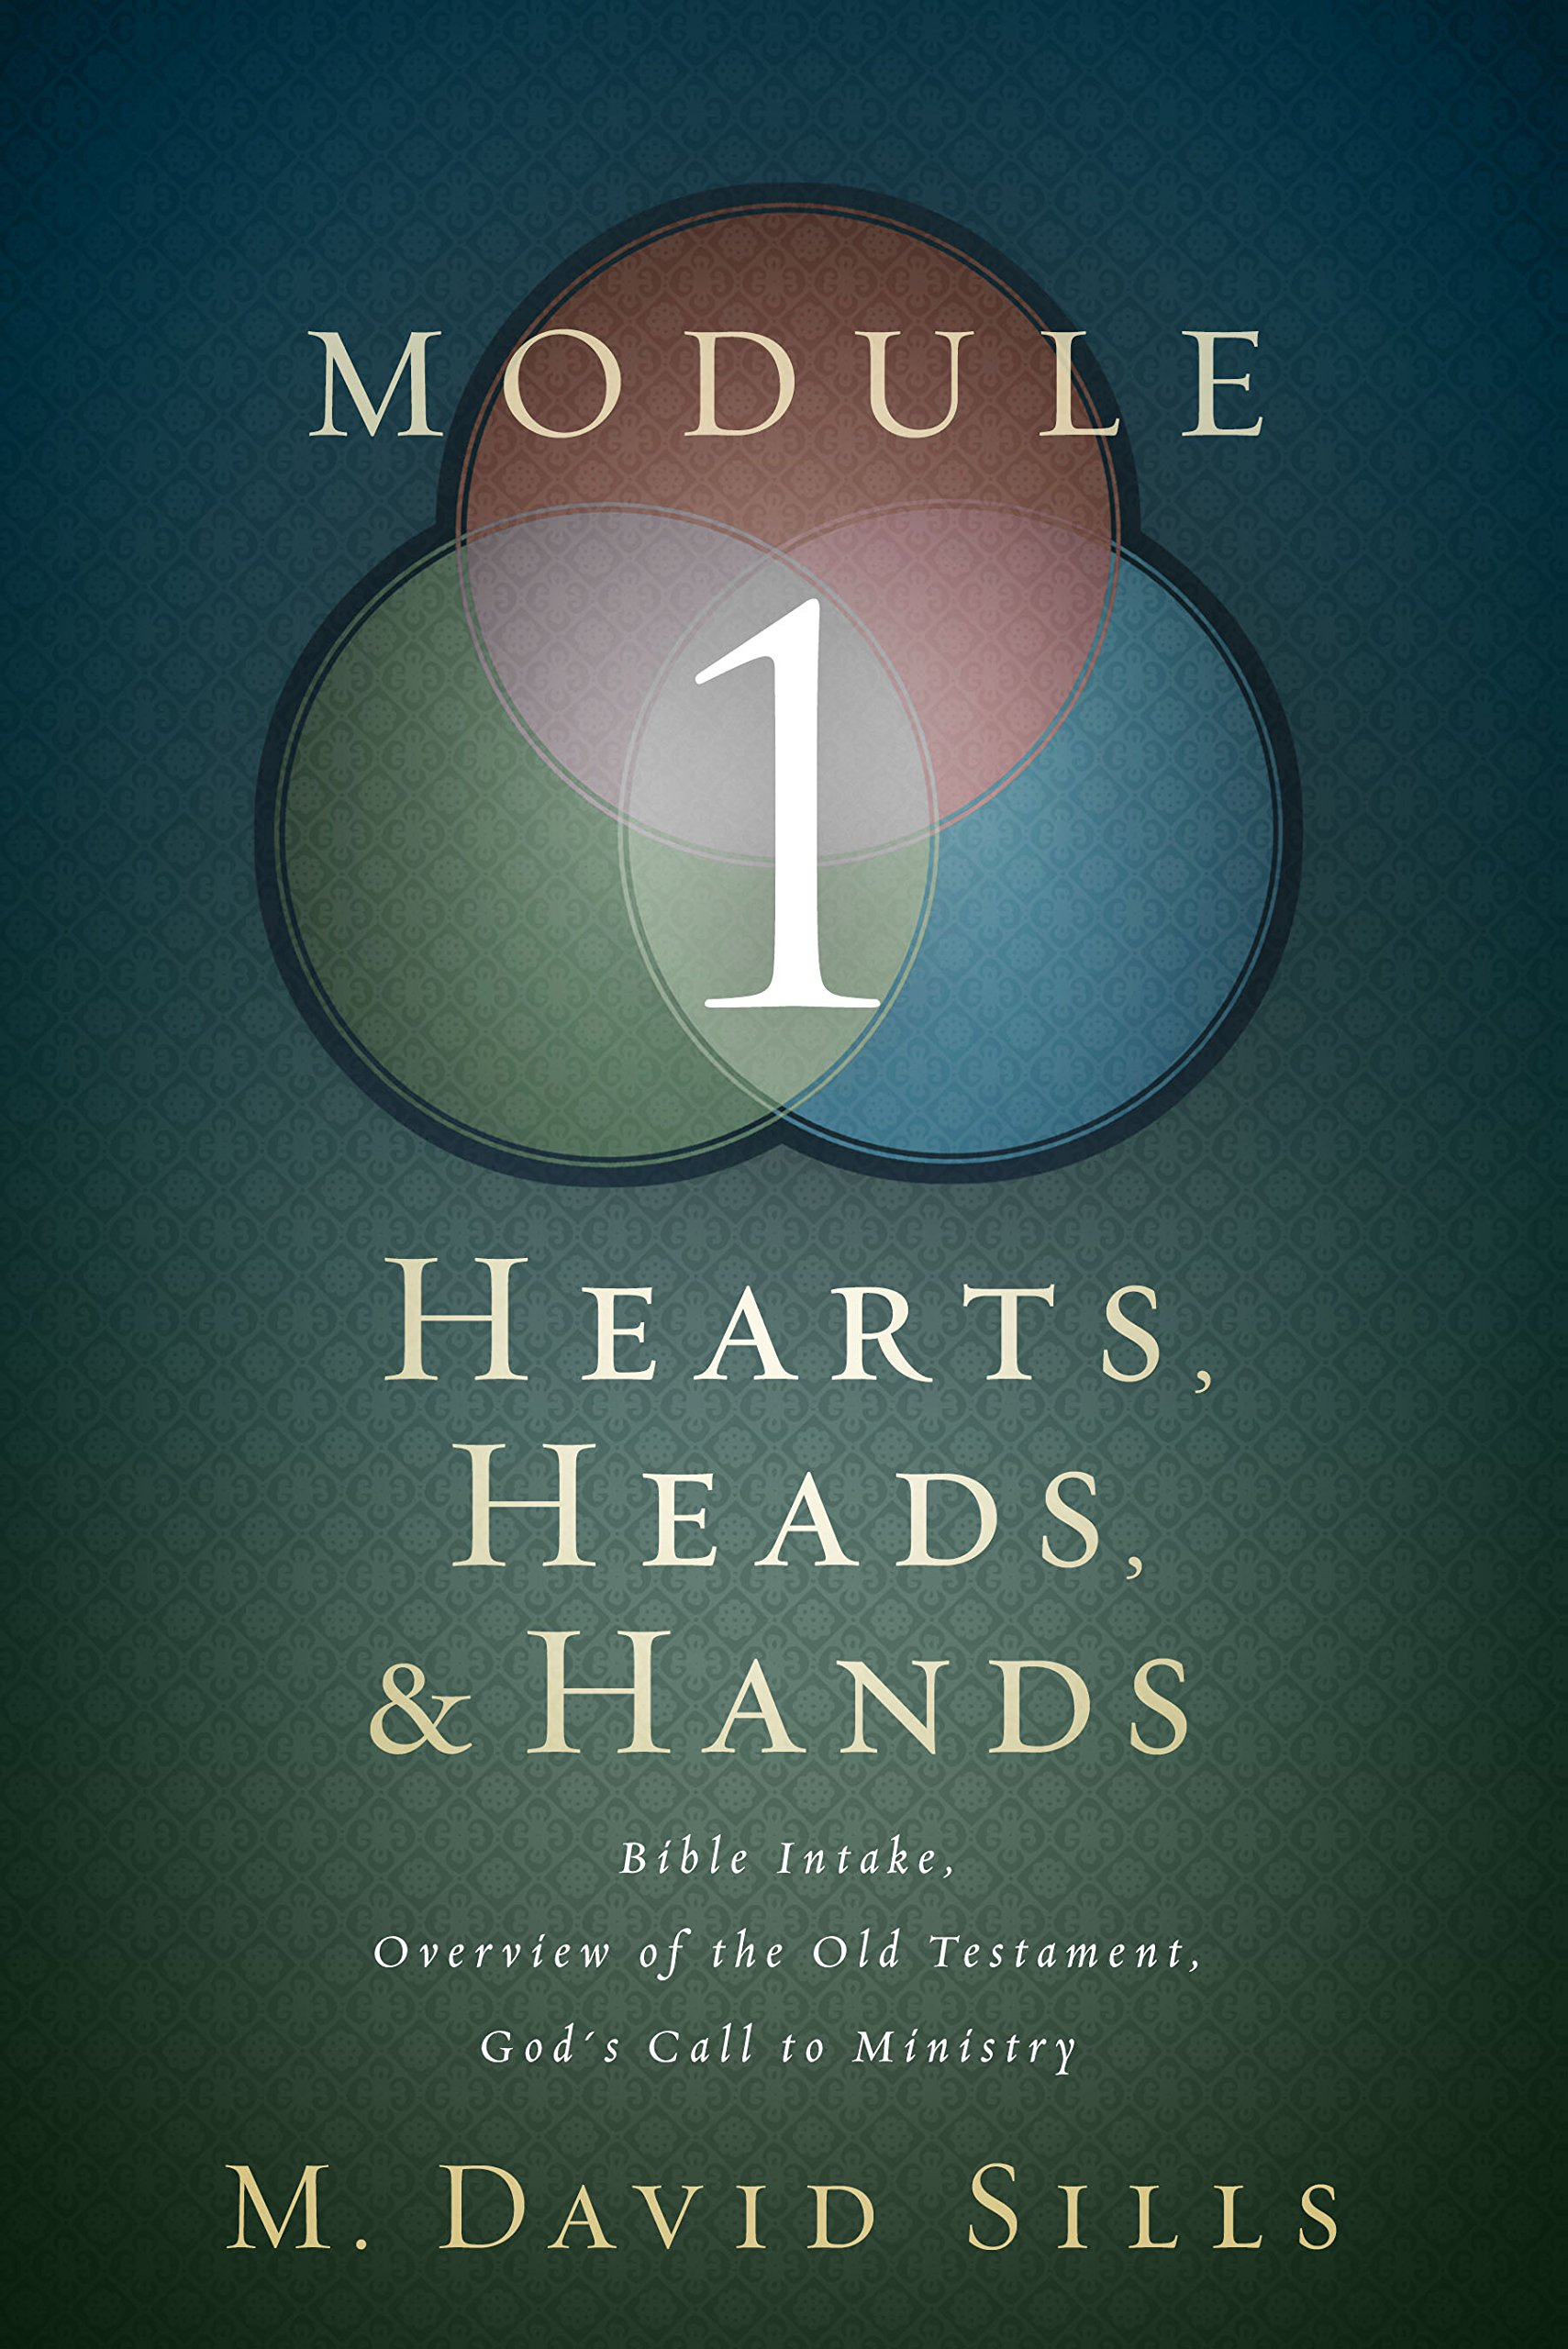 Download Hearts, Heads, and Hands- Module 1 pdf